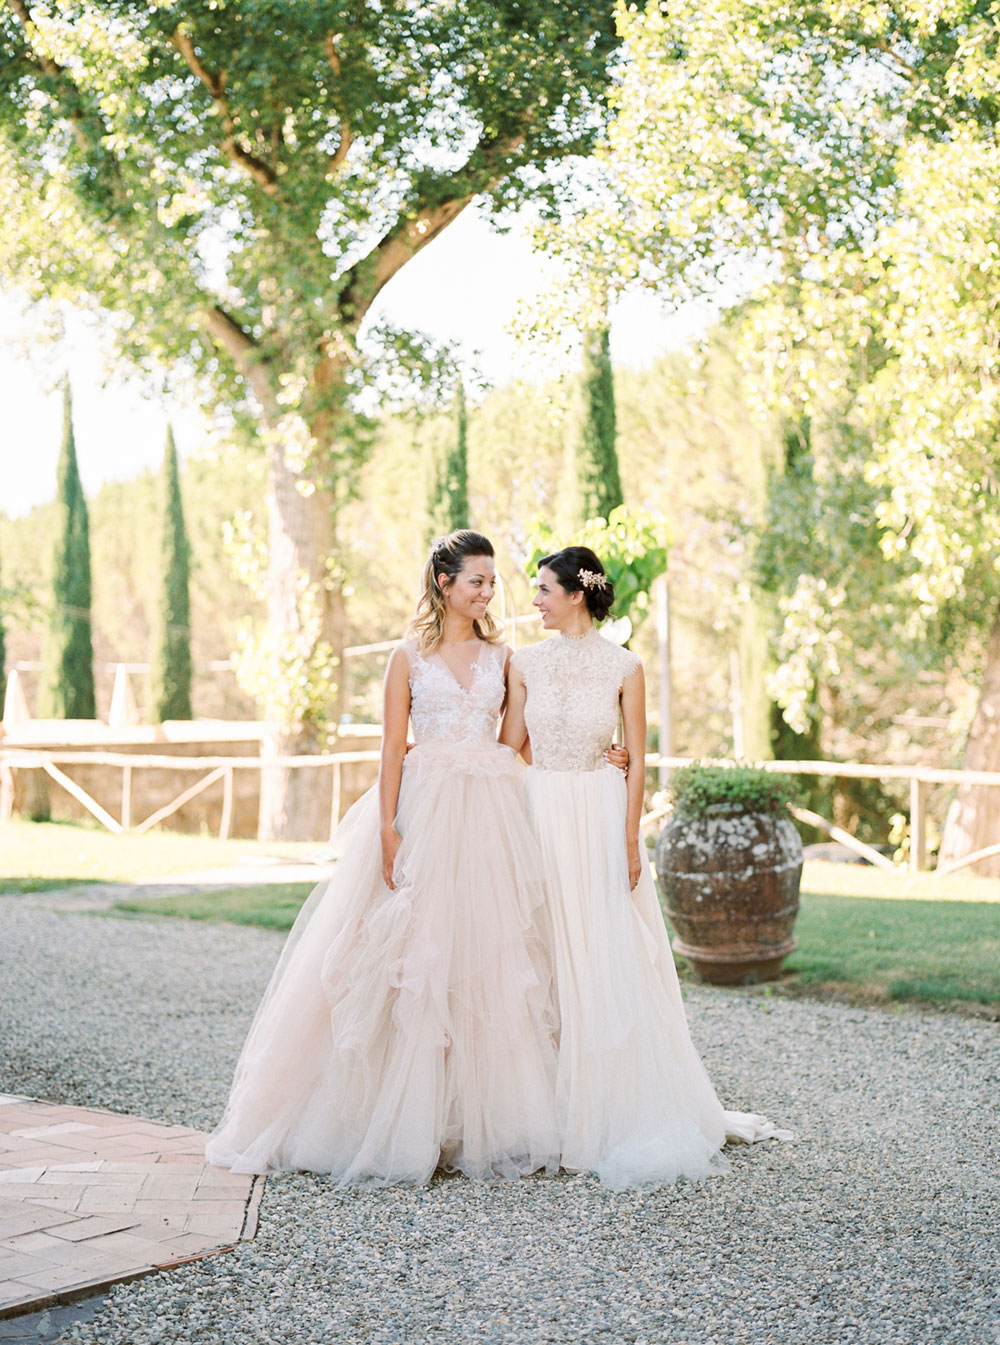 Linari-Tuscany-Elopement-Courtney-Michaela-234